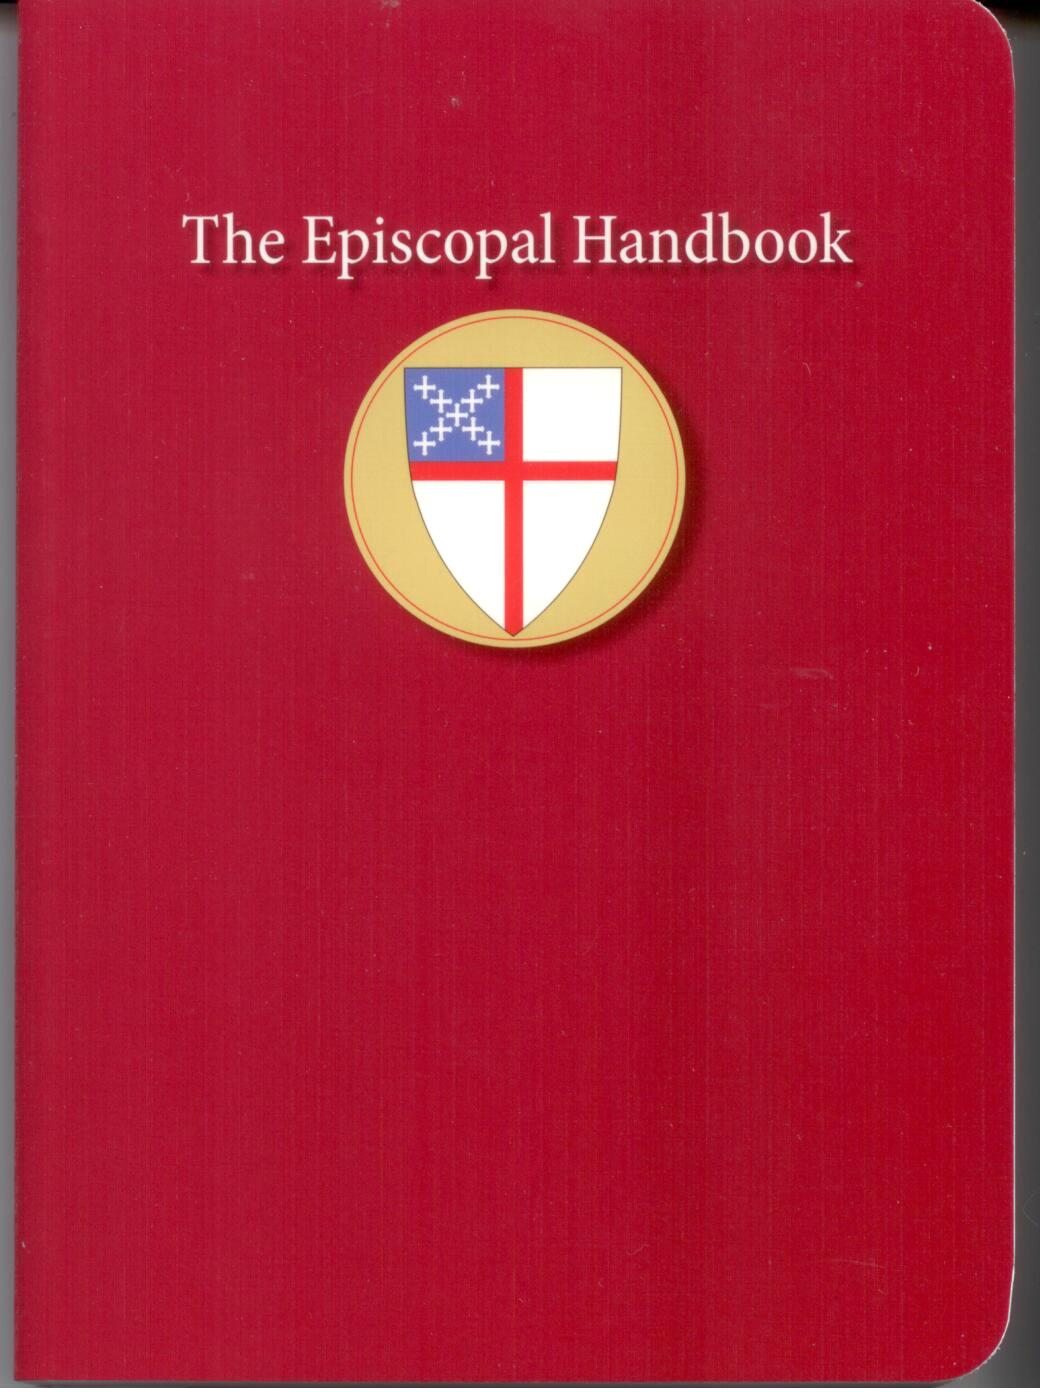 The Episcopal Handbook by Morehouse Publishing 108-9780819223296